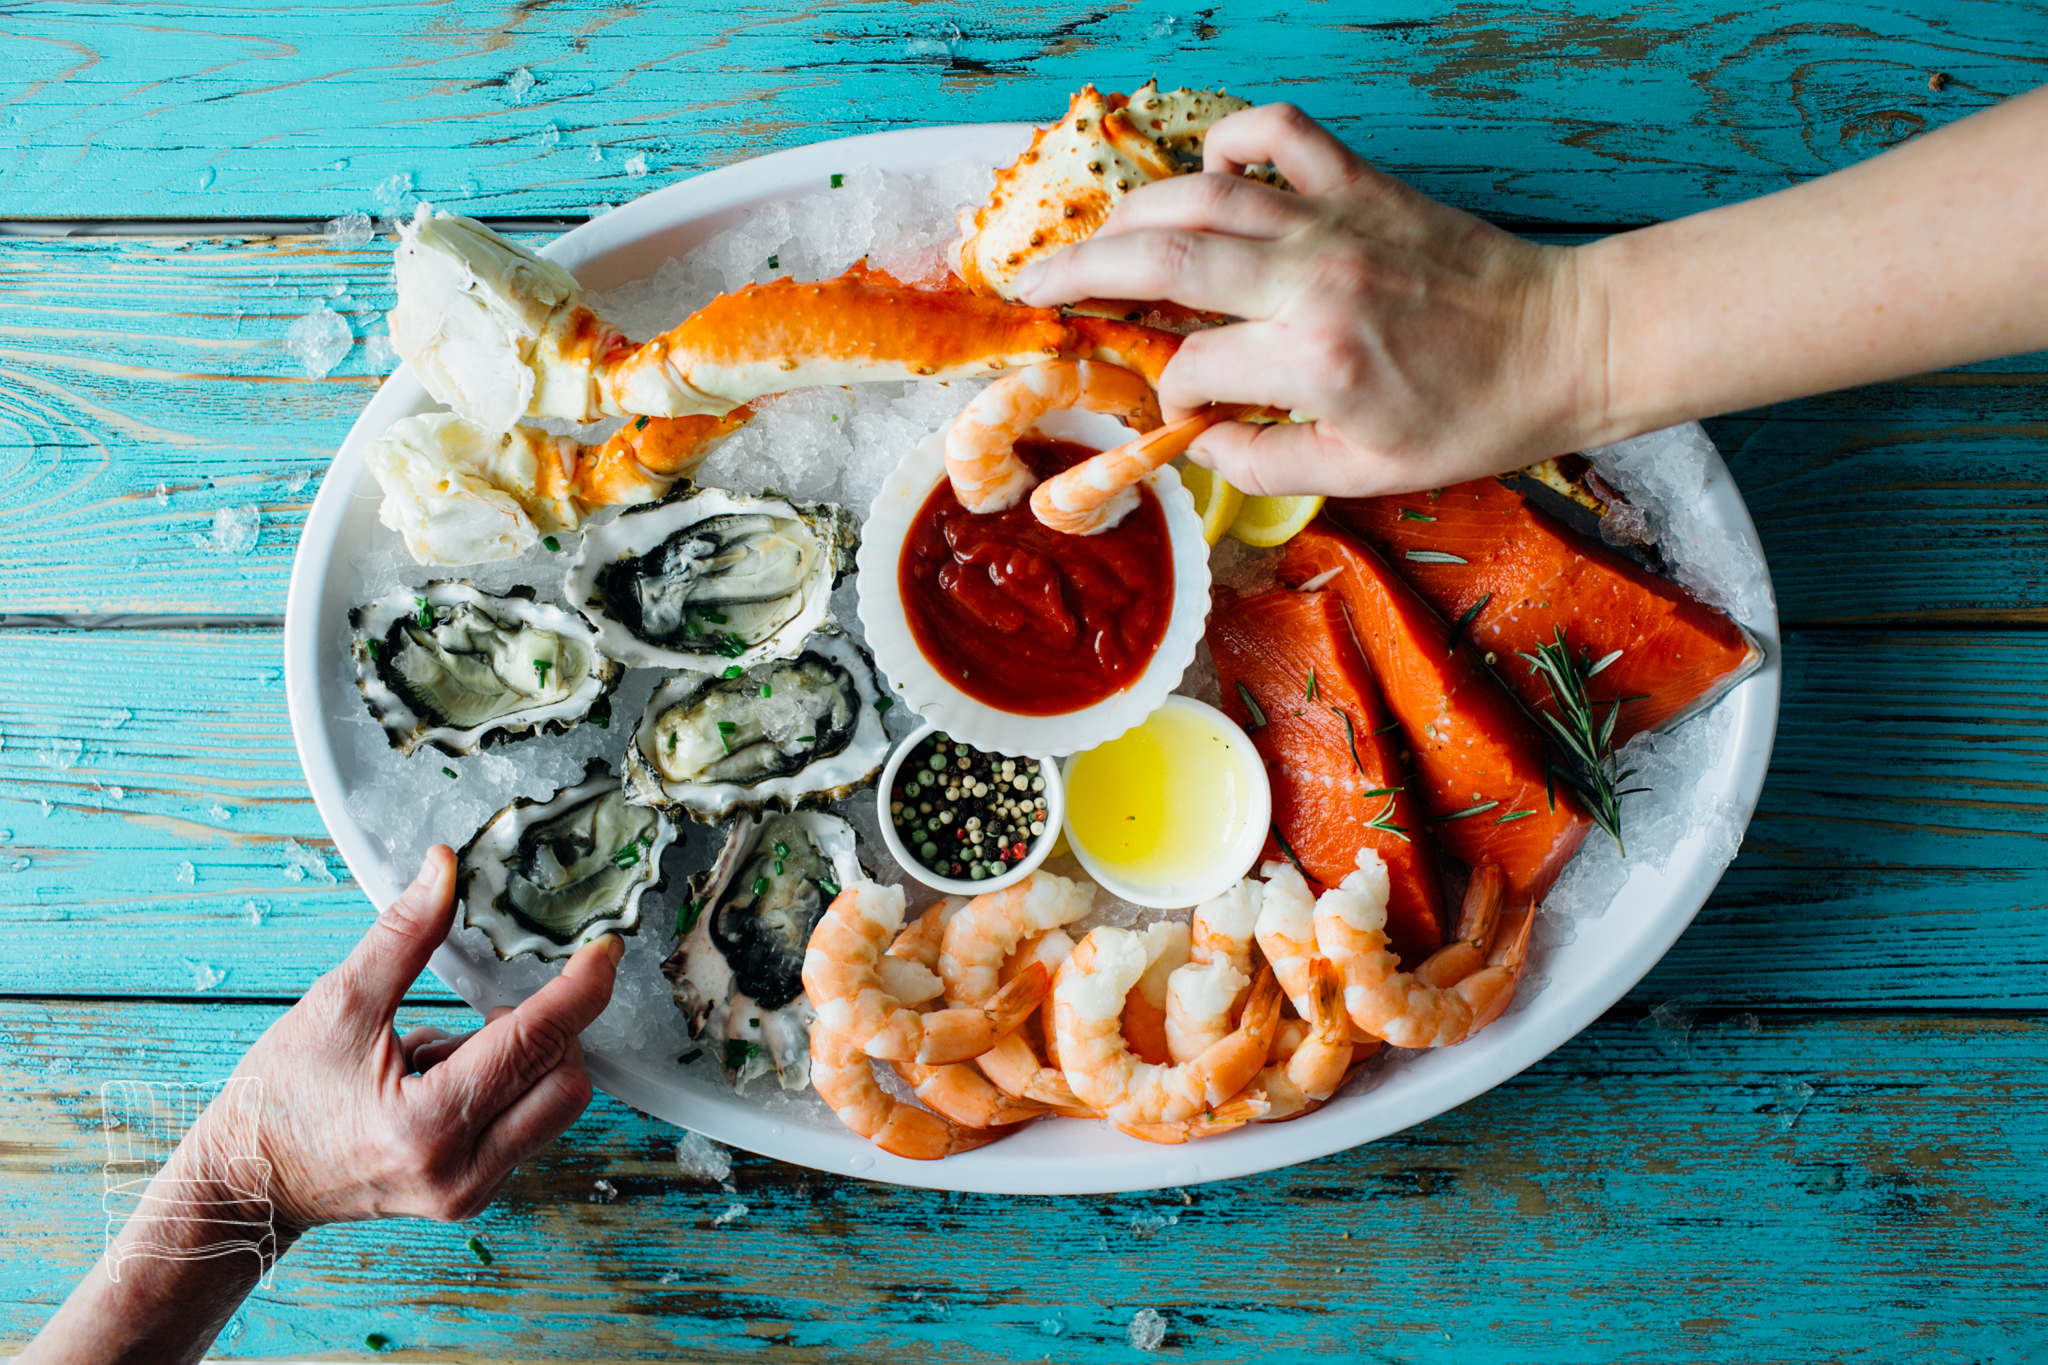 bellingham-marketing-photographer-photo-seafood-haggen-167.jpg